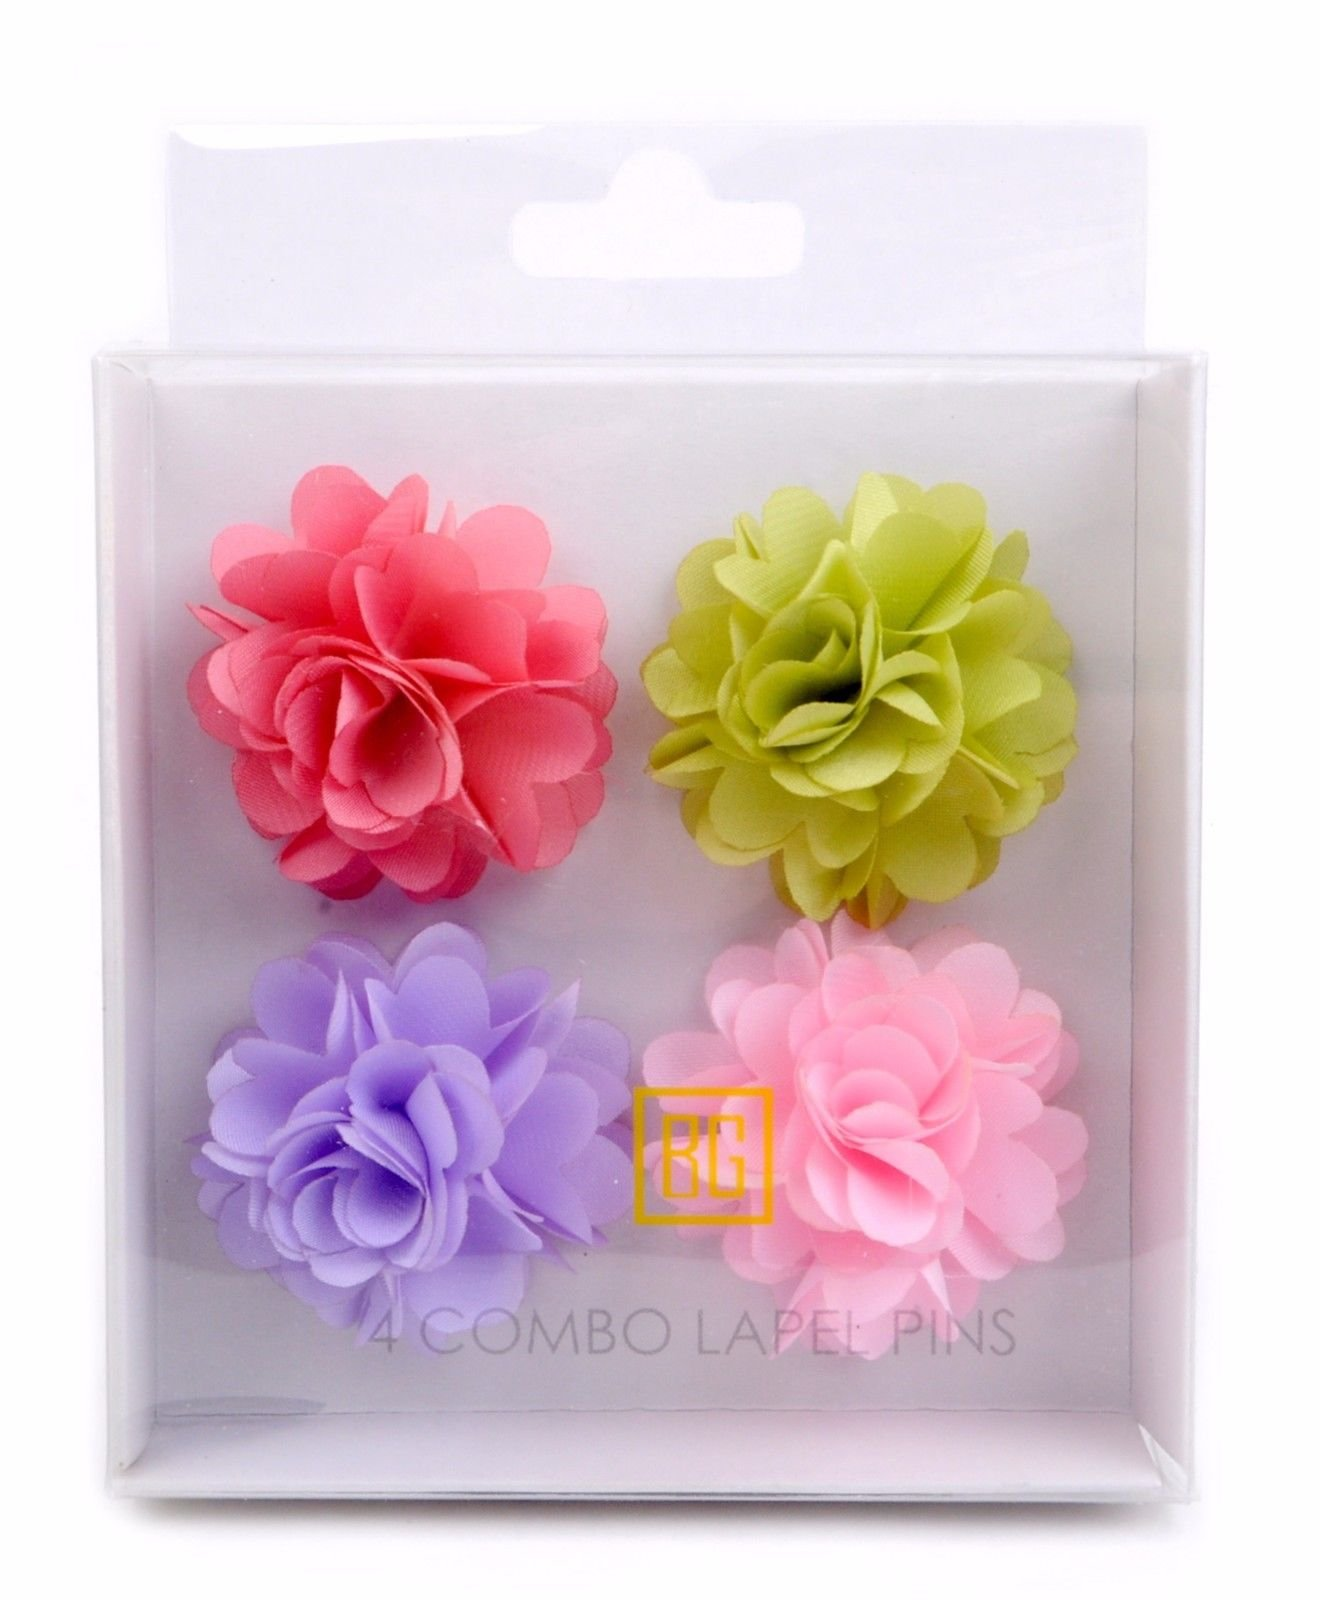 BG-Mini-Bouquet-Clutch-Back-Flower-Tuxedo-Suit-Lapel-Pins-Boutonniere-4-Pack-Set thumbnail 15